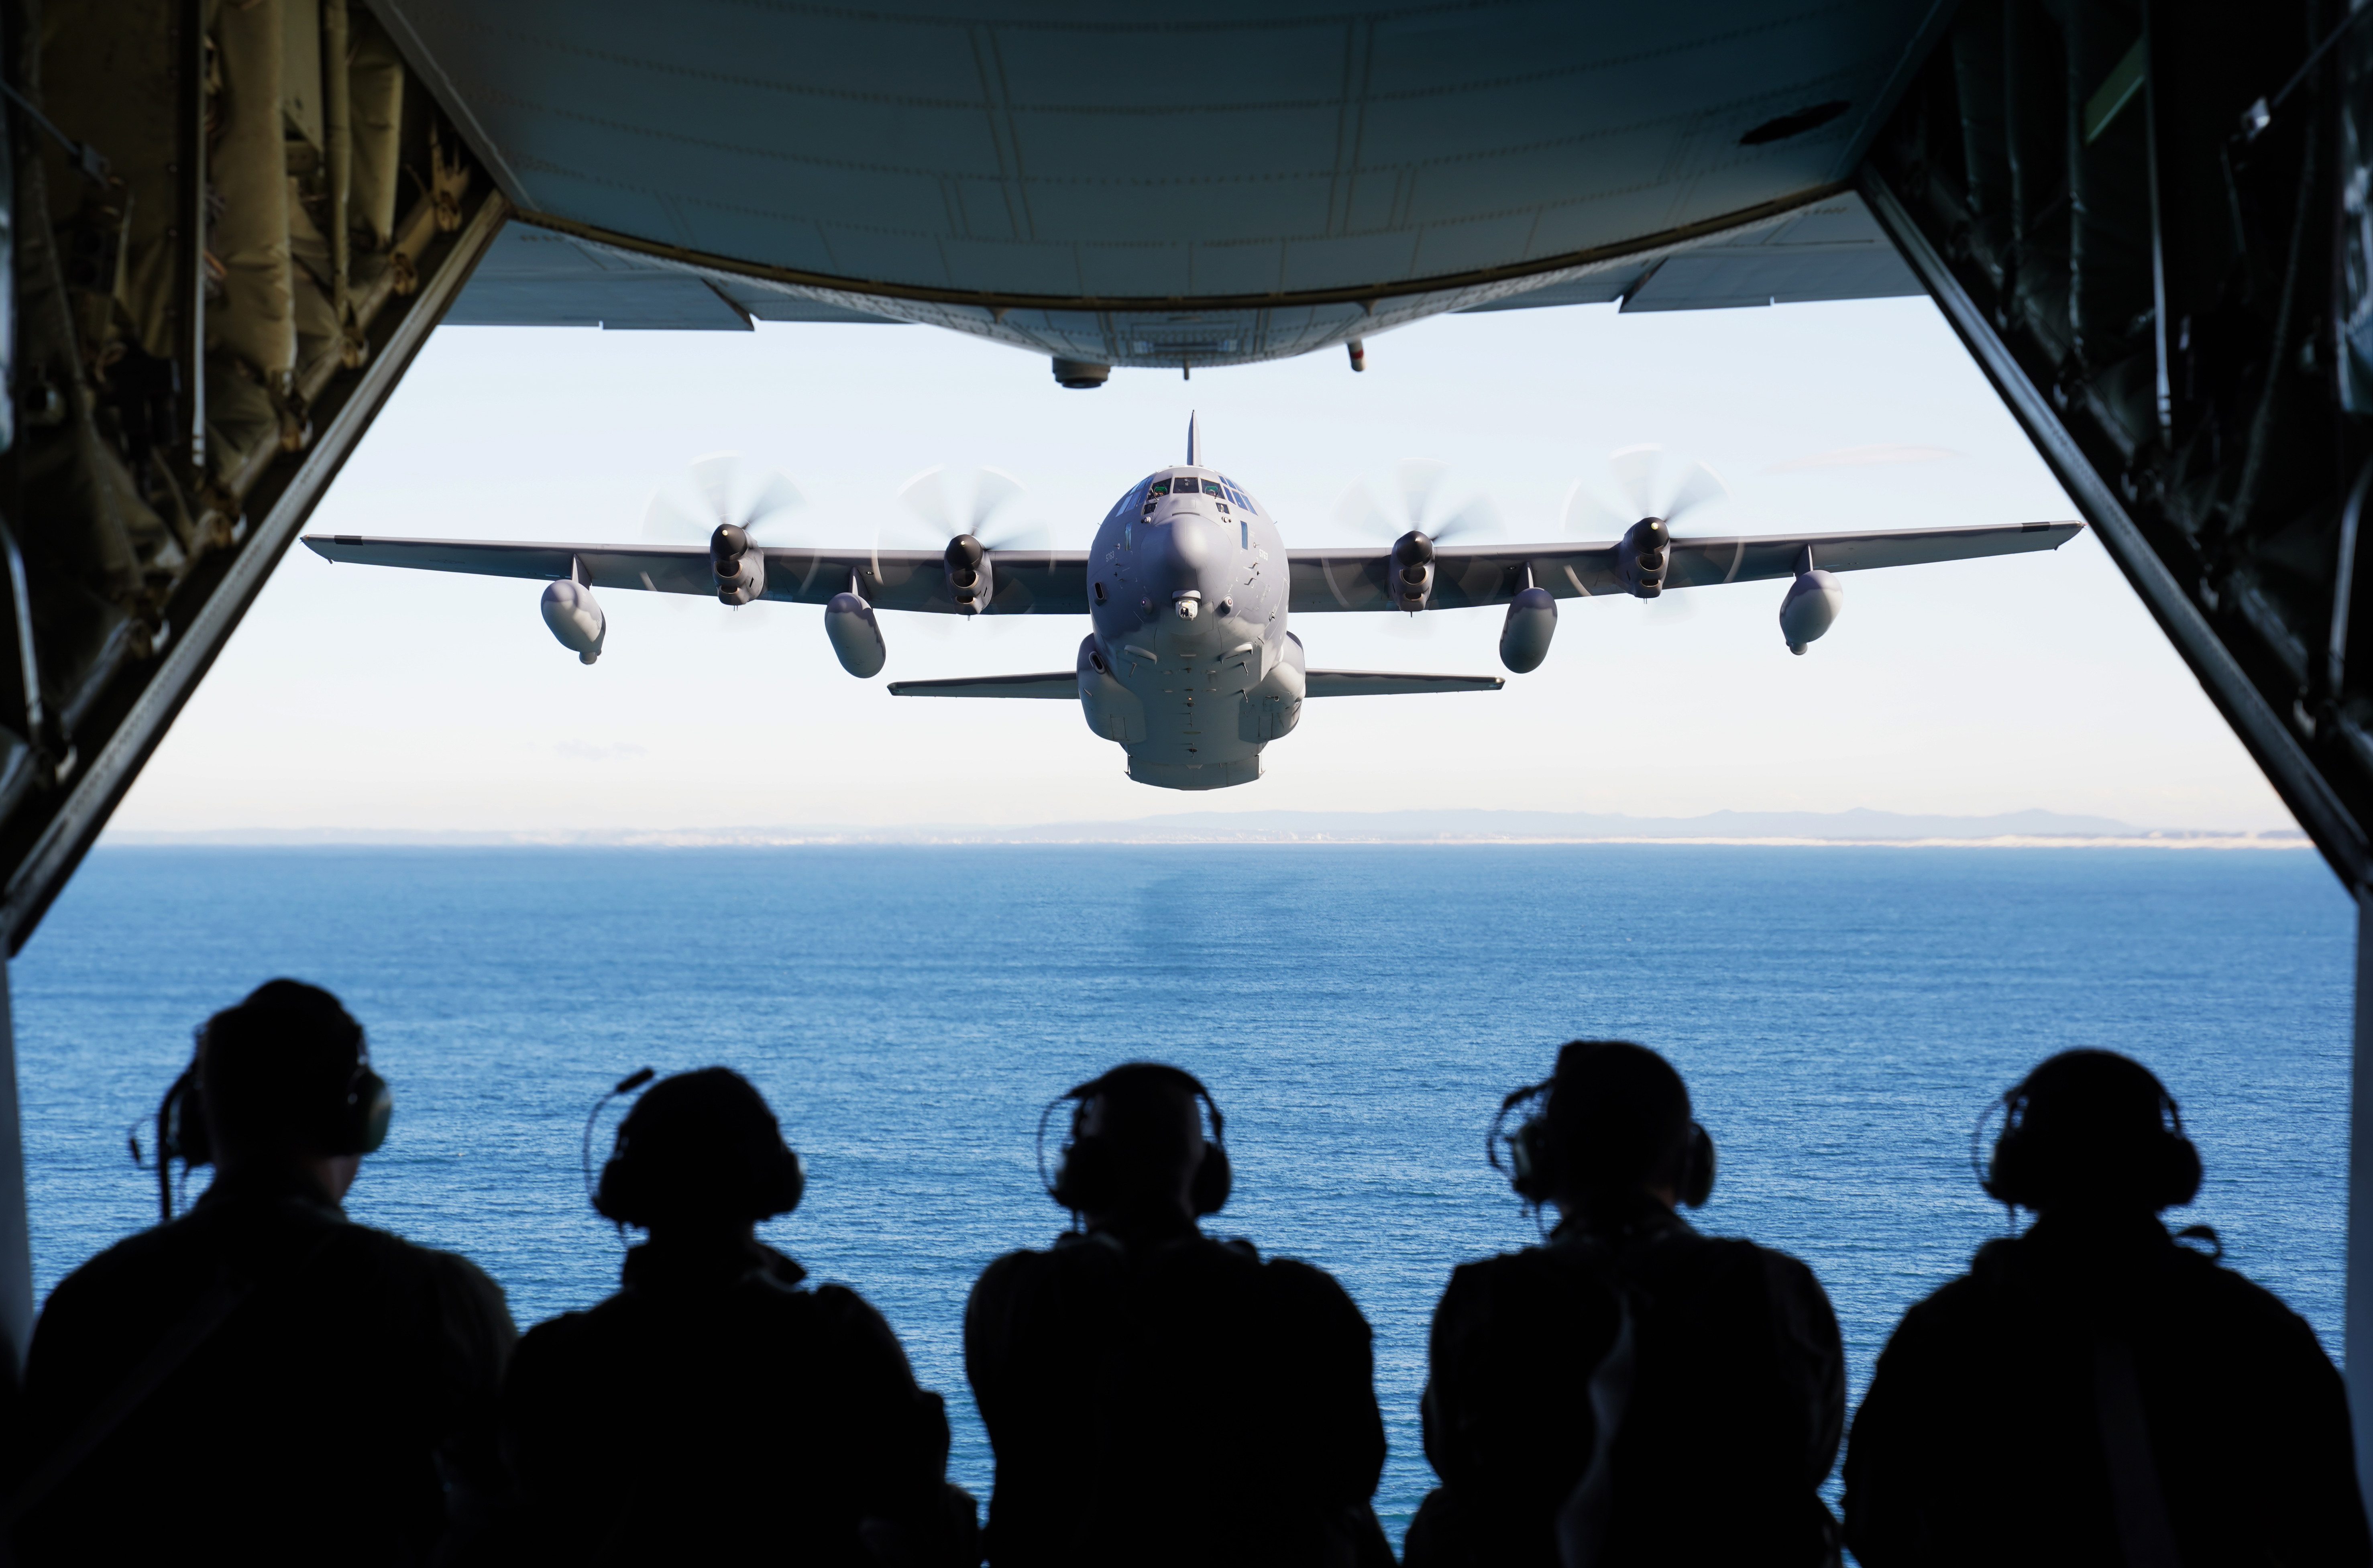 U.S. and Royal Australian Air Force airmen observe an MC-130J Air Commando II flying in formation off the coast of New South Wales, Australia, during exercise Teak Action 21 July 3. (1st Lt. Joshua Thompson/Air Force)